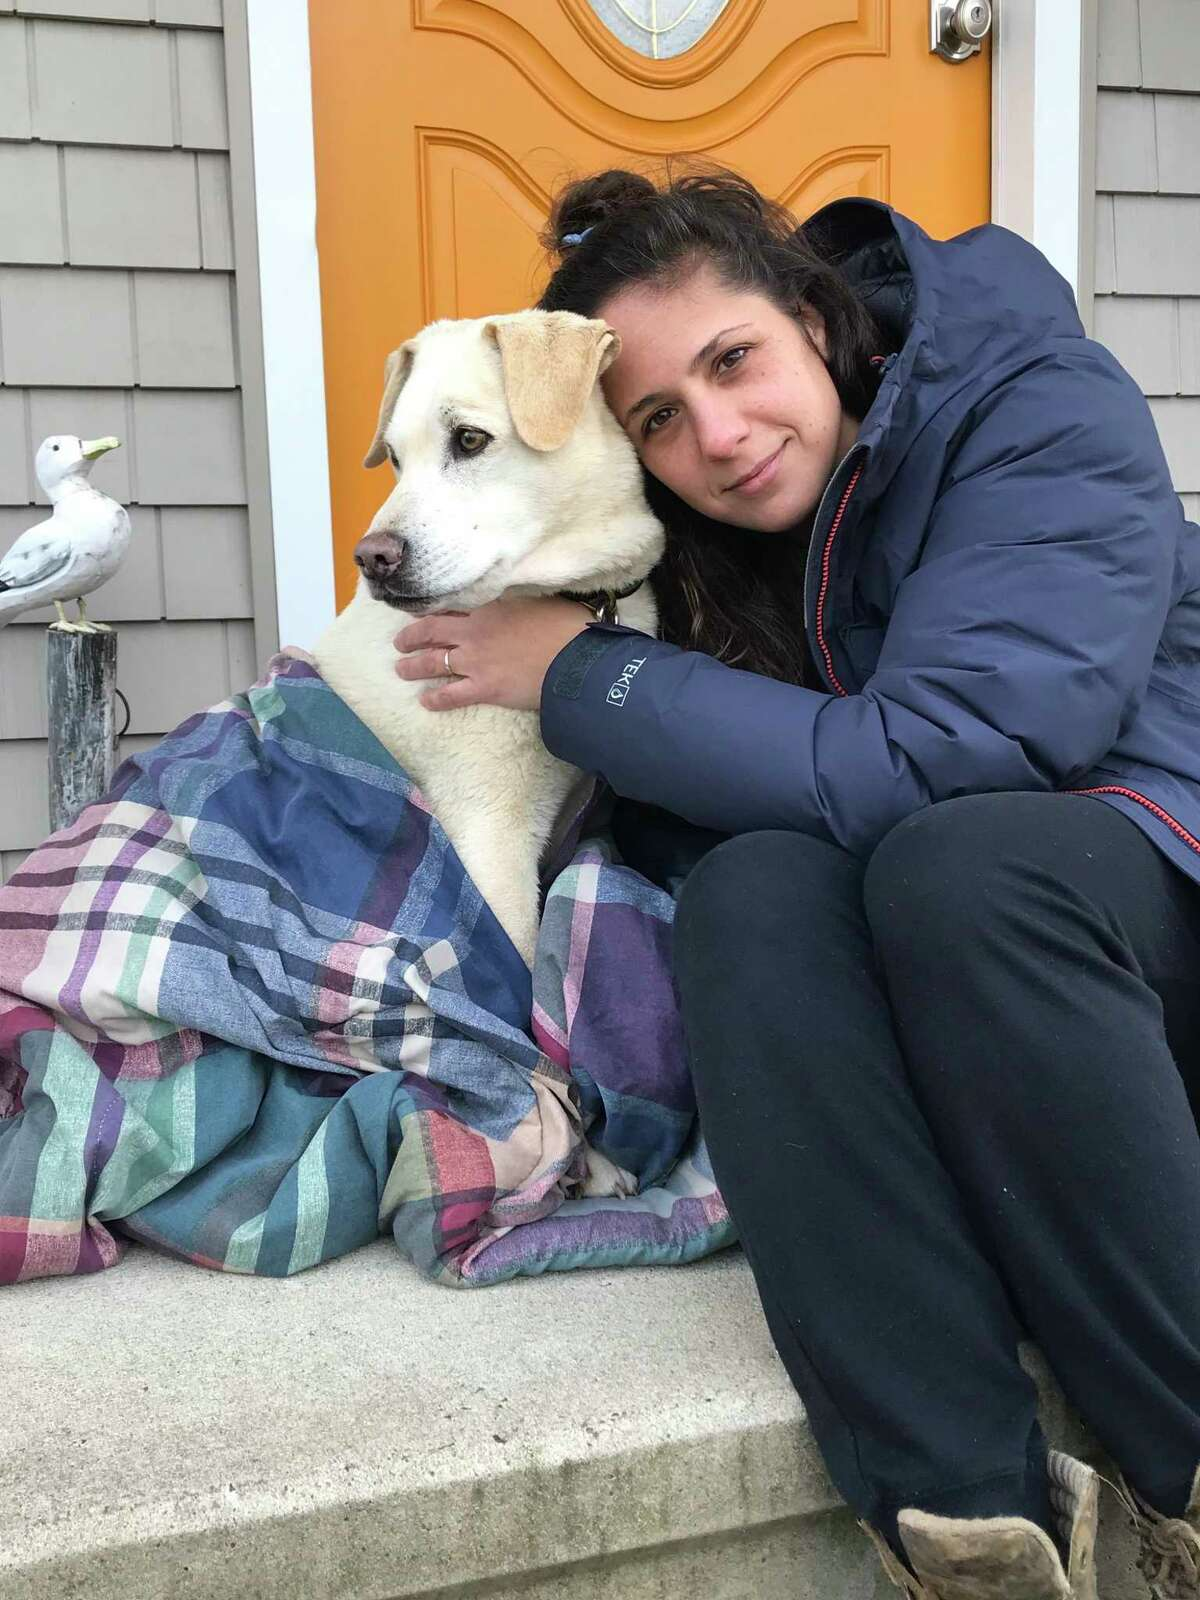 After six weeks of searching, Brandi Solomon was reunited with her dog, Lexi, early Sunday morning, Jan. 17.